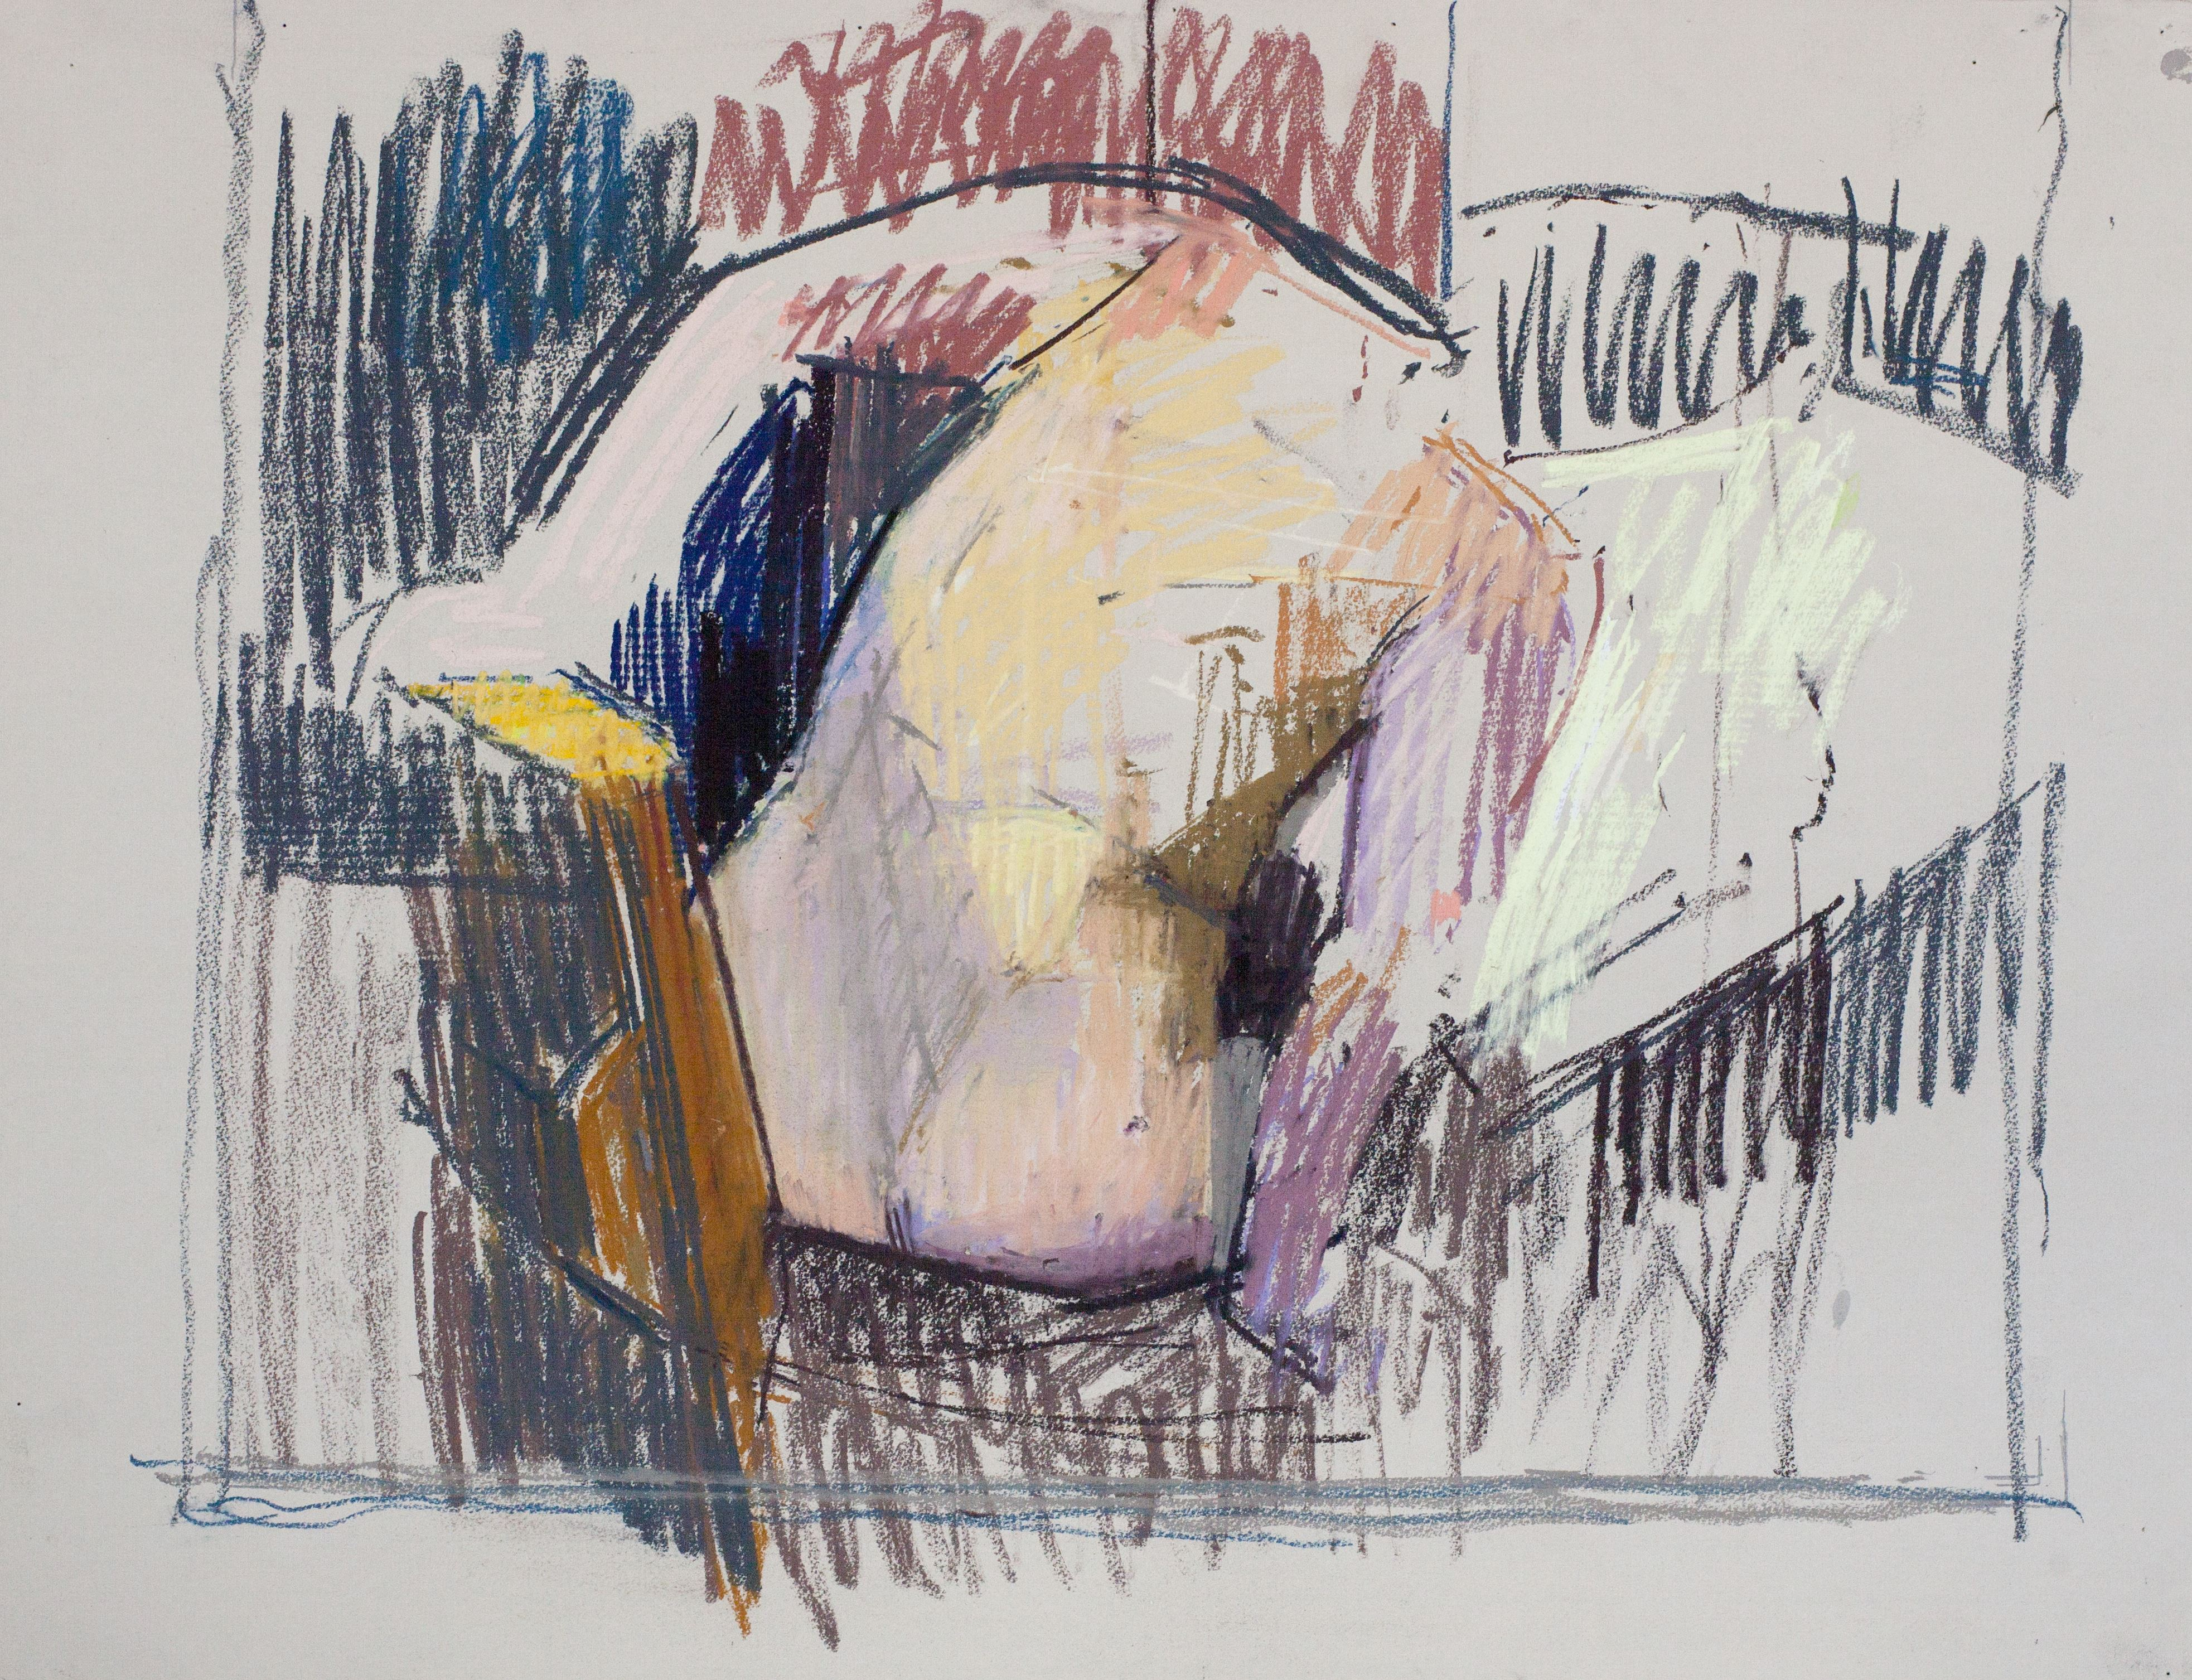 Reclining Back Study, 2013